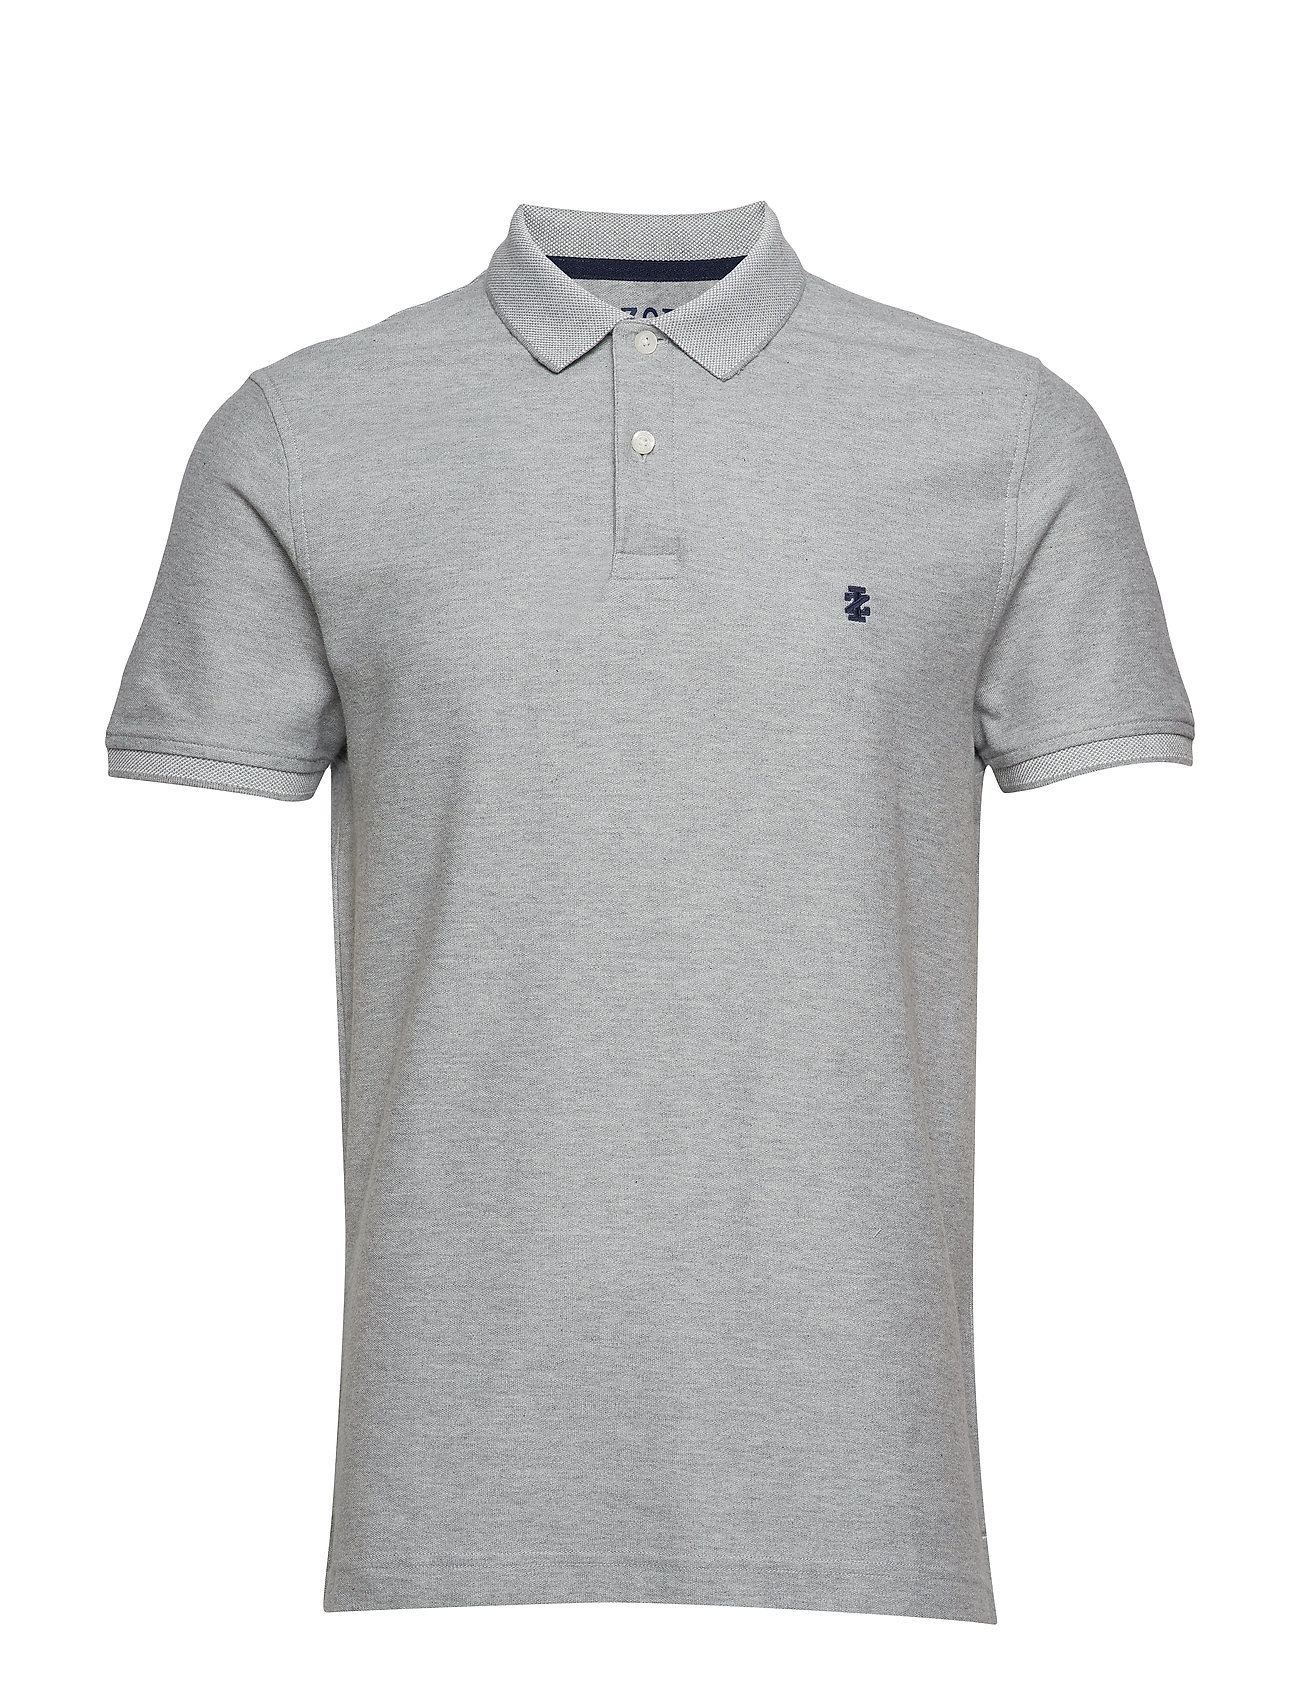 IZOD PERFORMANCE PIQUE POLO - GREY HTR